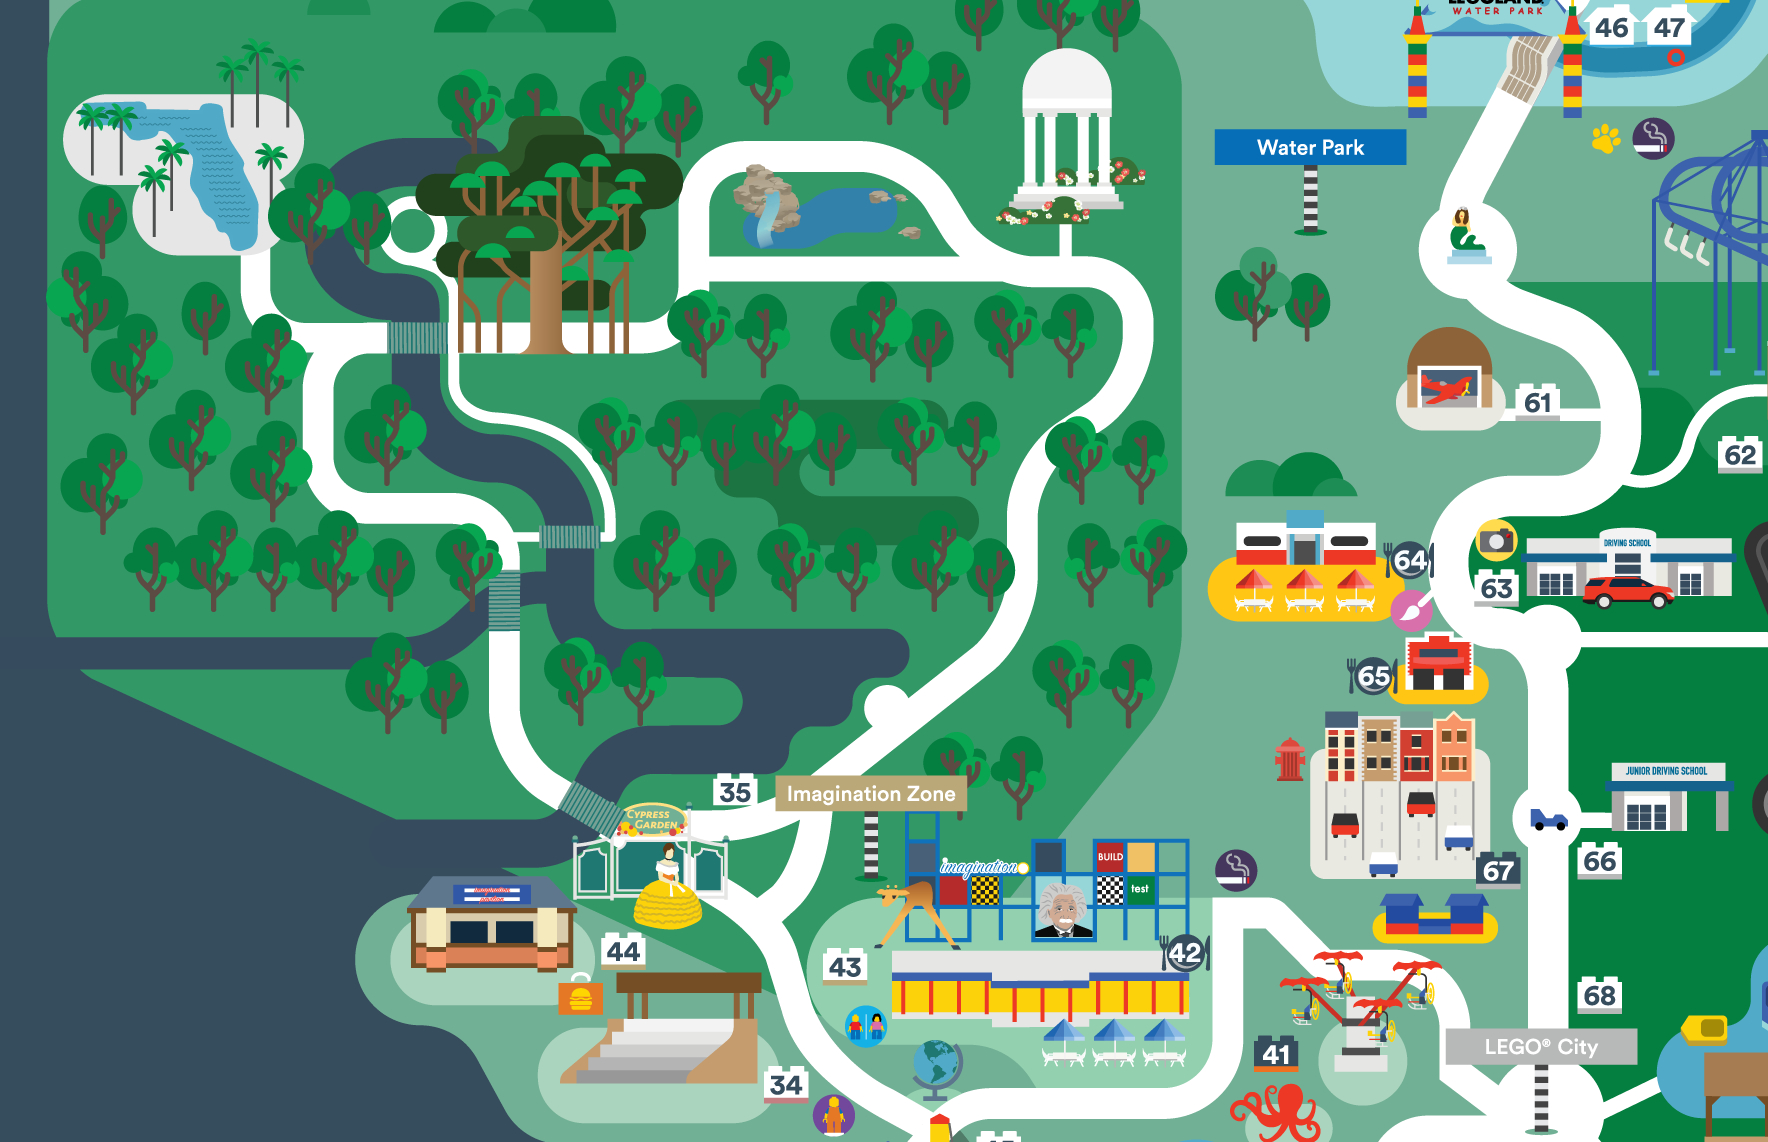 Legoland Florida Map 2016 On Behance - Legoland Florida Hotel Map